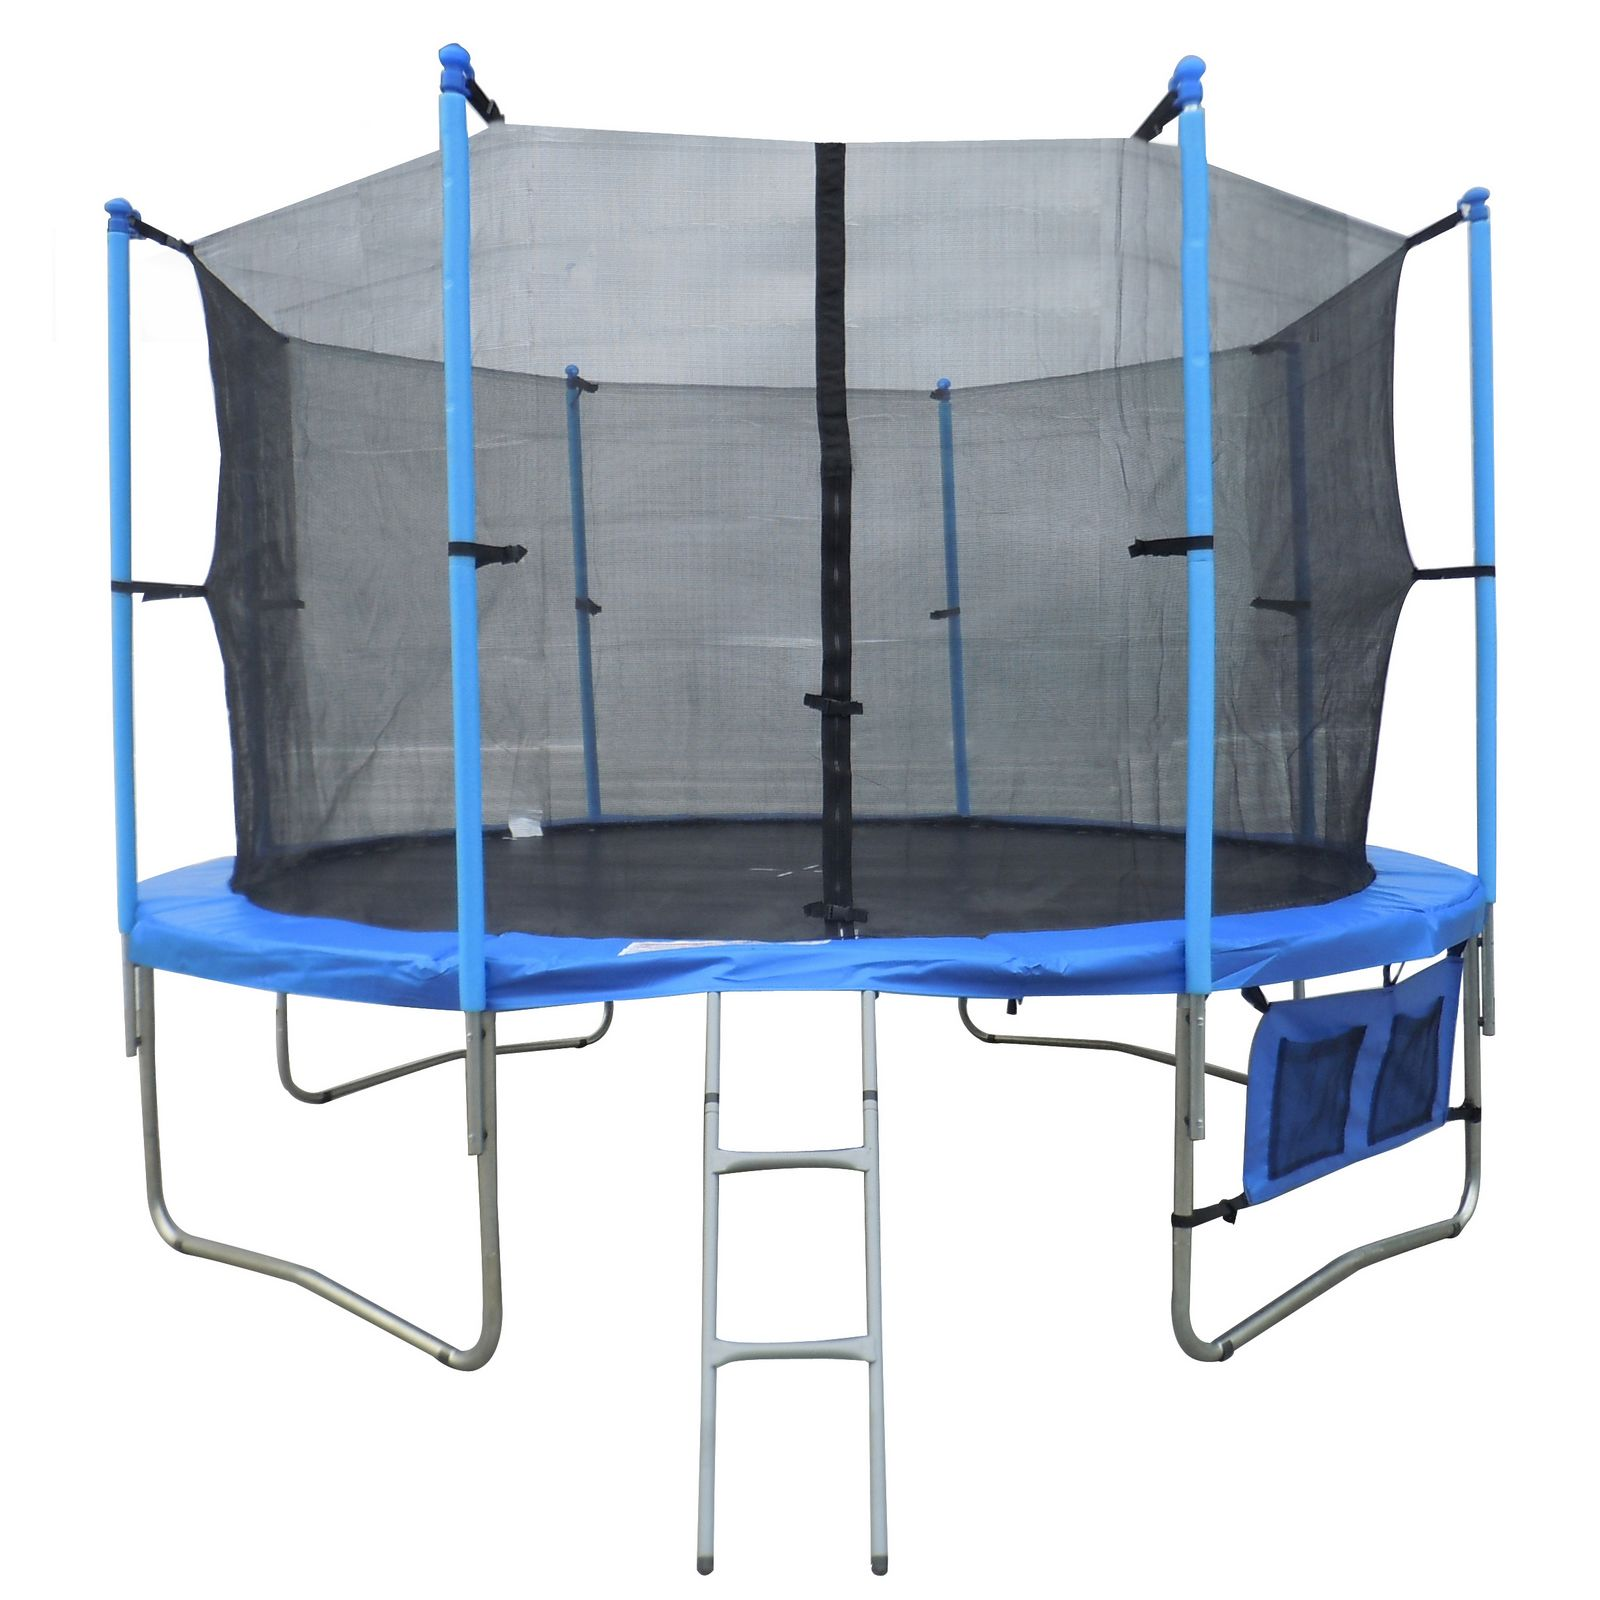 12ft FT Trampoline with Ladder Net Enclosure Safety Padding Weather Cover